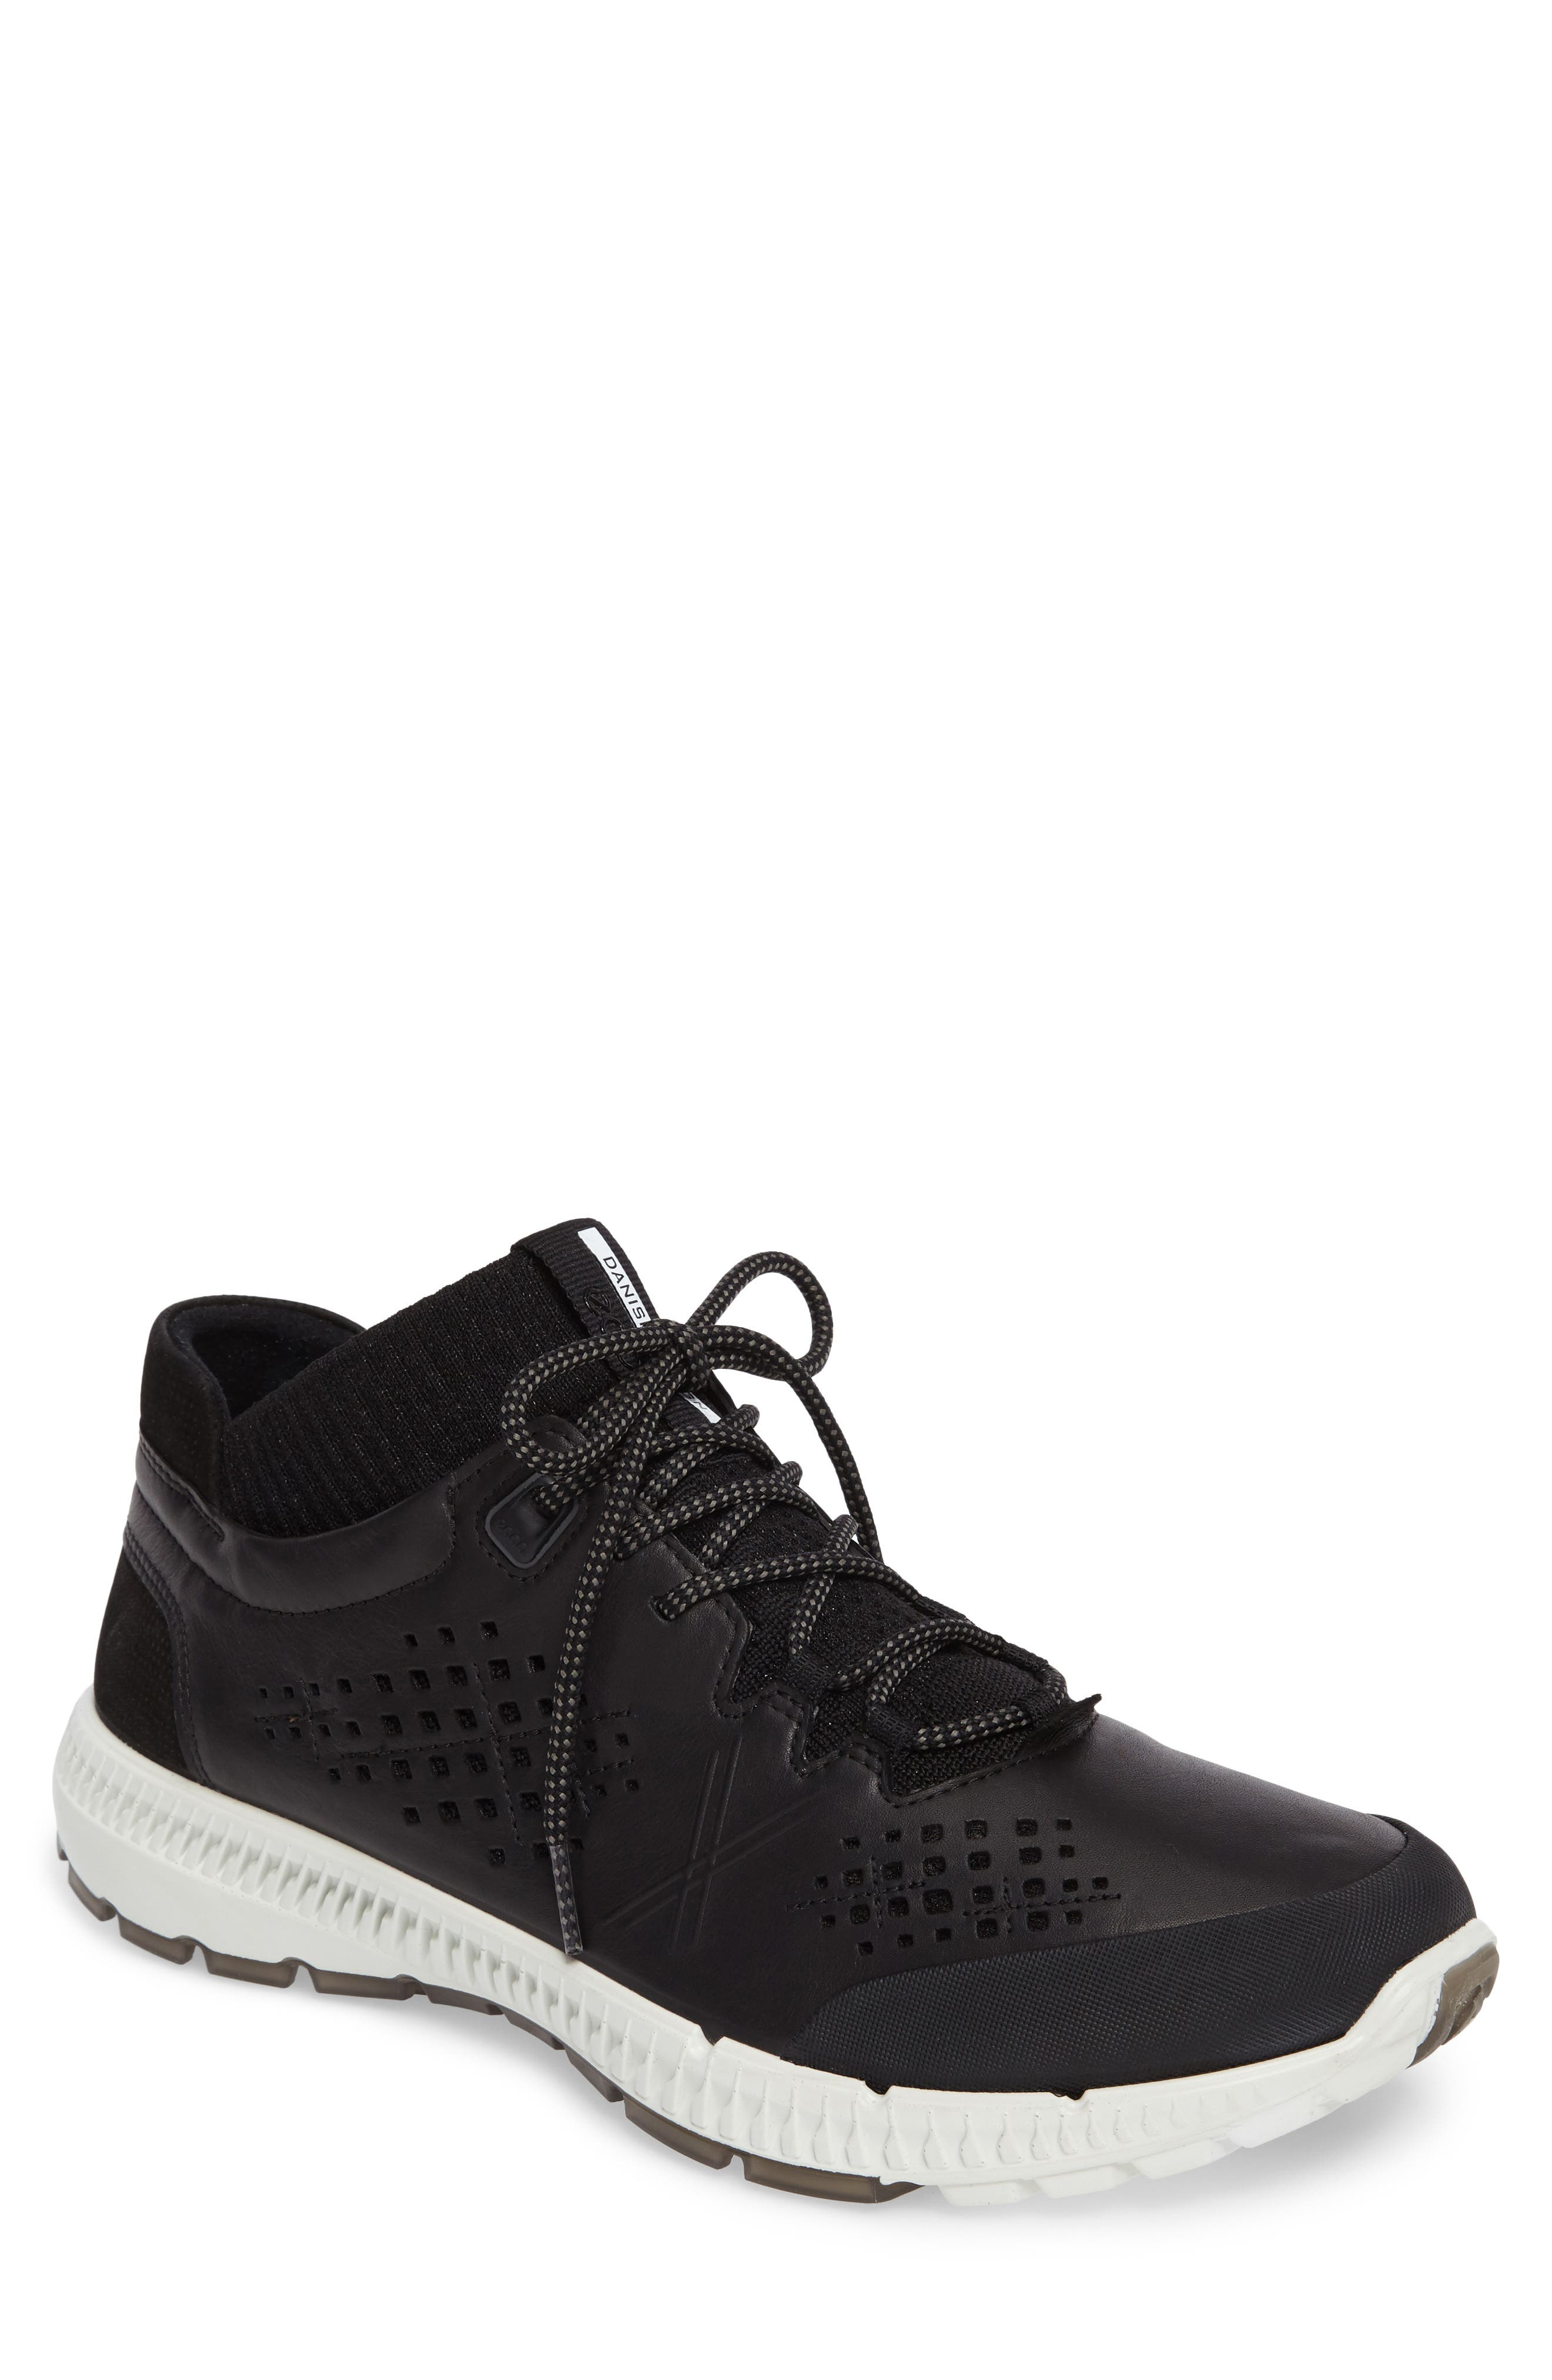 Intrinsic Mid Sneaker,                             Main thumbnail 1, color,                             001